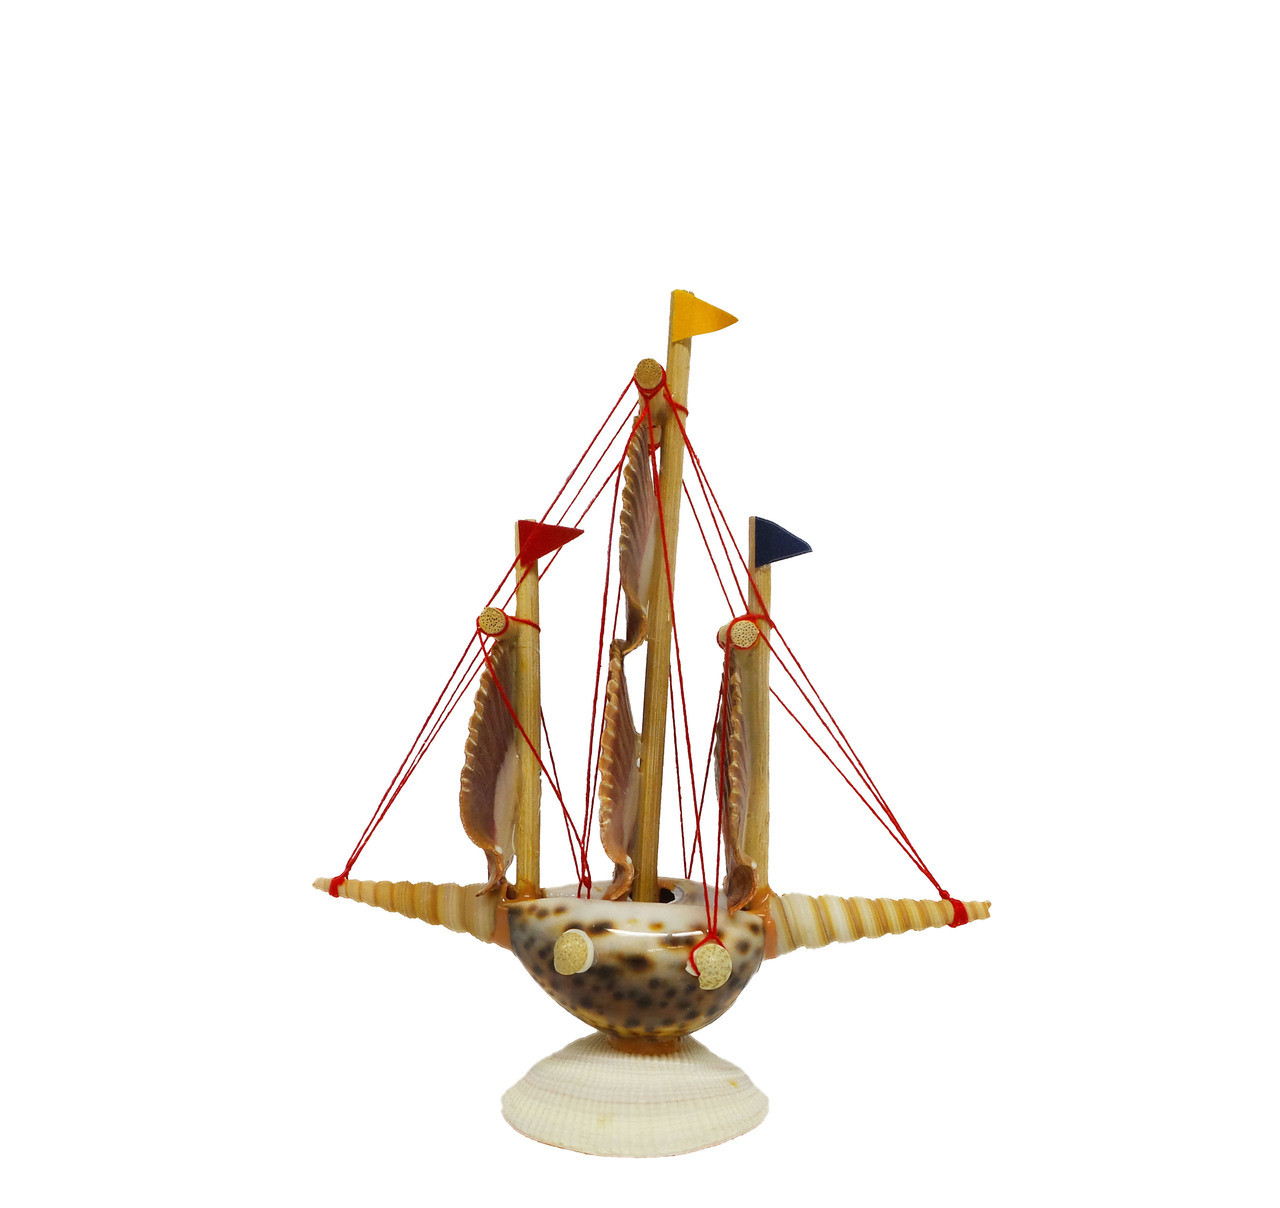 Tiger Cowrie Seashell Sailboat